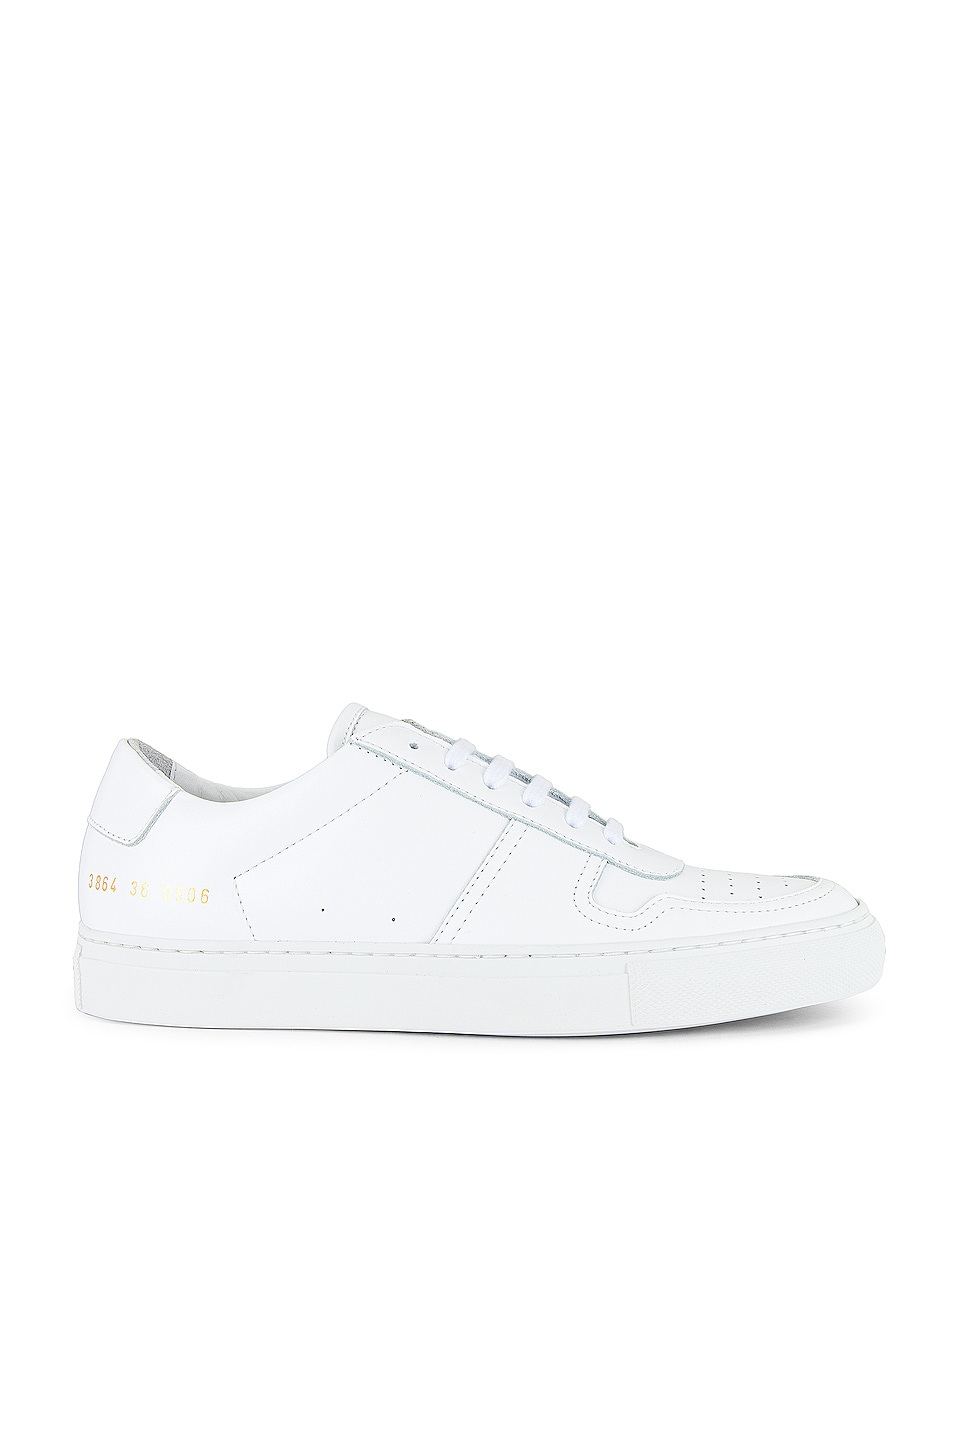 Common Projects КРОССОВКИ BBALL